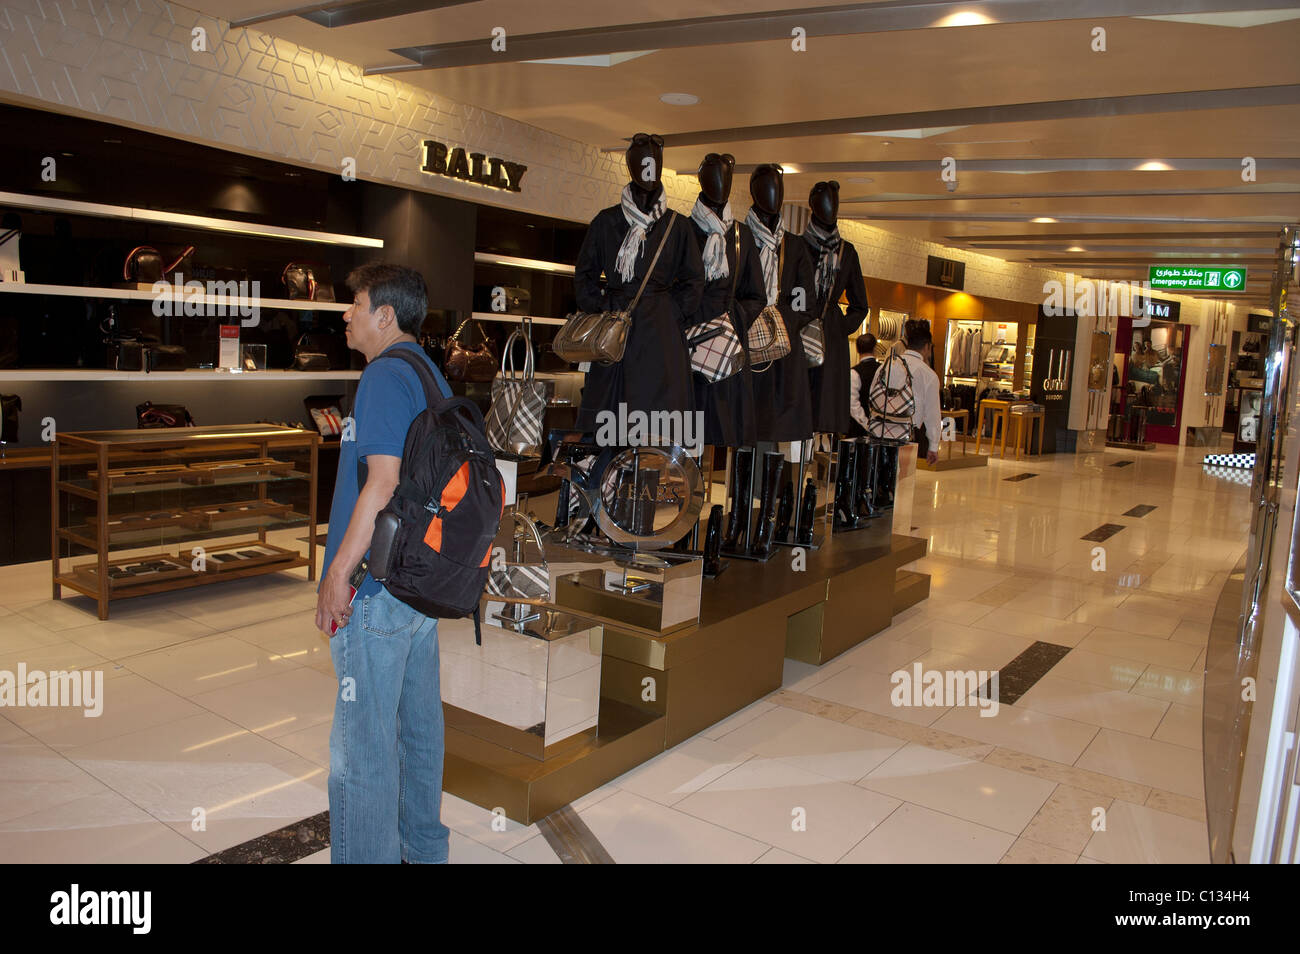 abfb2fc8743642 Duty free shopping, Abu Dhabi International Airport, UAE Stock Photo ...